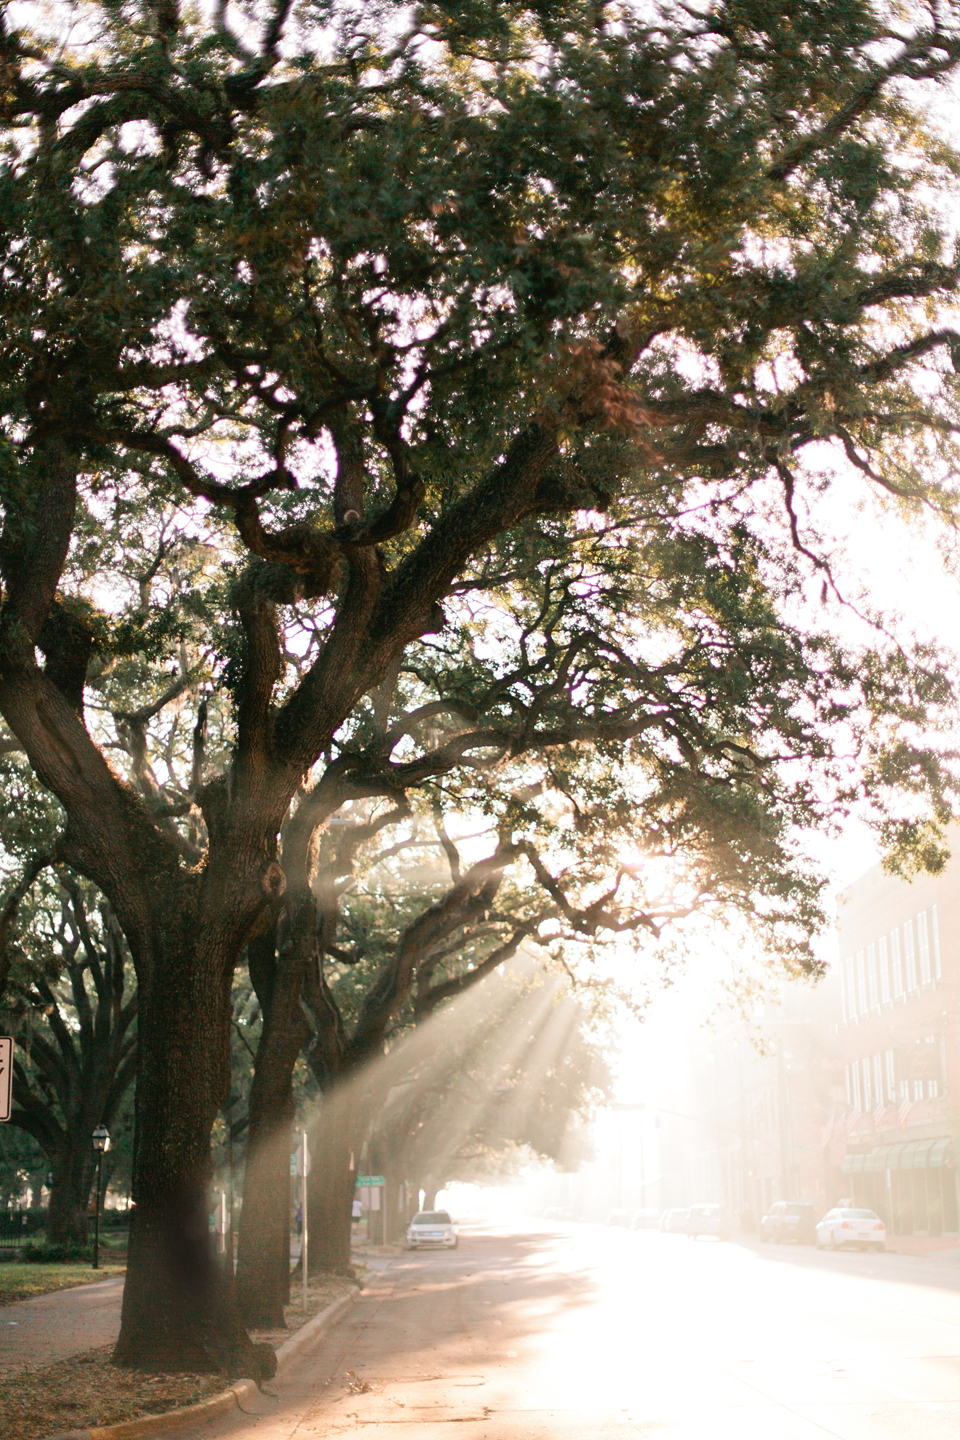 Picture of early morning light through large oak trees in historic downtown Savannah, Georgia.